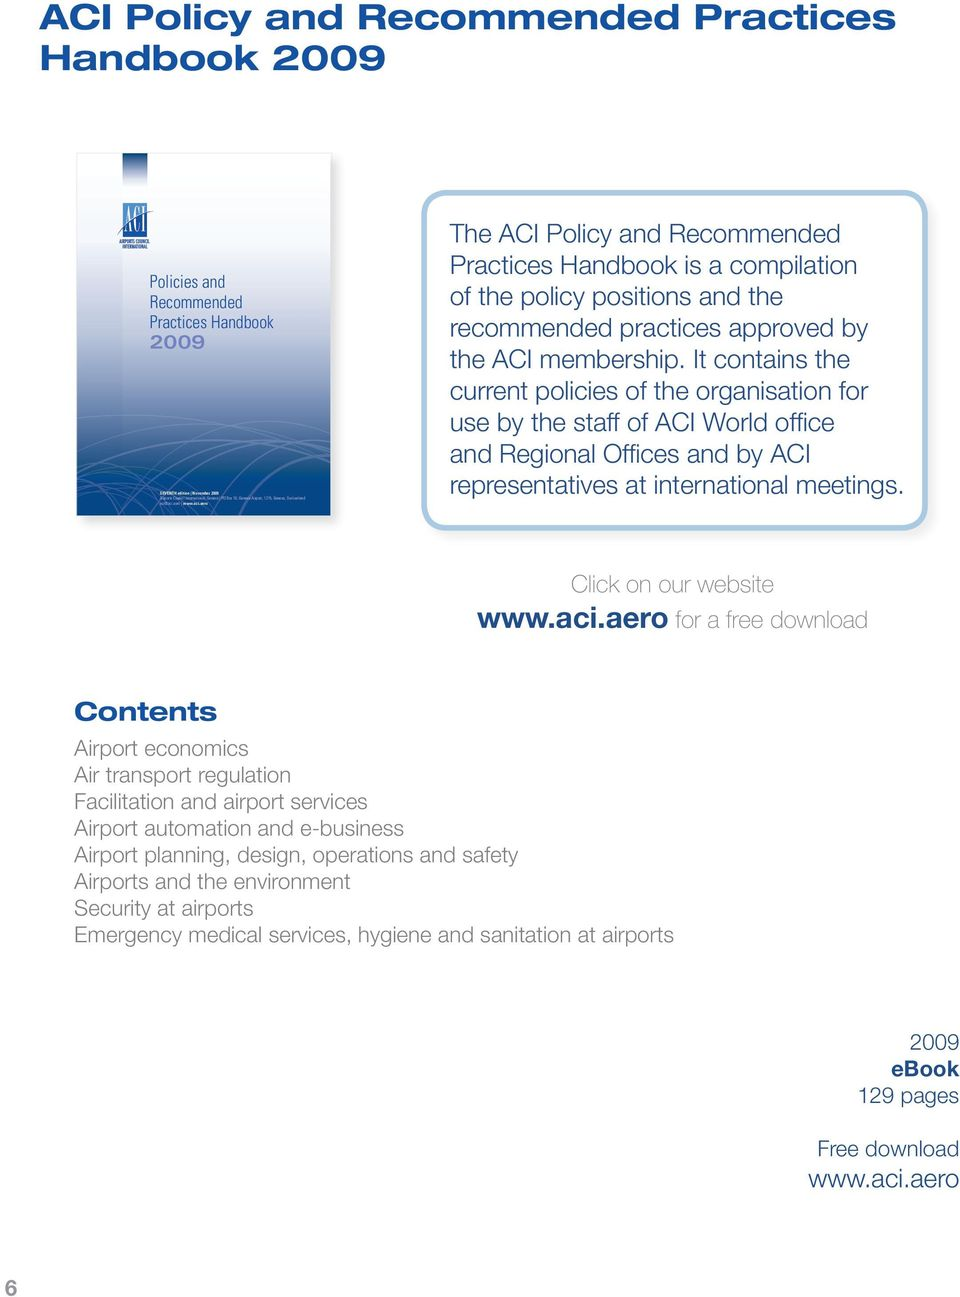 It contains the current policies of the organisation for use by the staff of ACI World office and Regional Offices and by ACI representatives at international meetings. Click on our website www.aci.